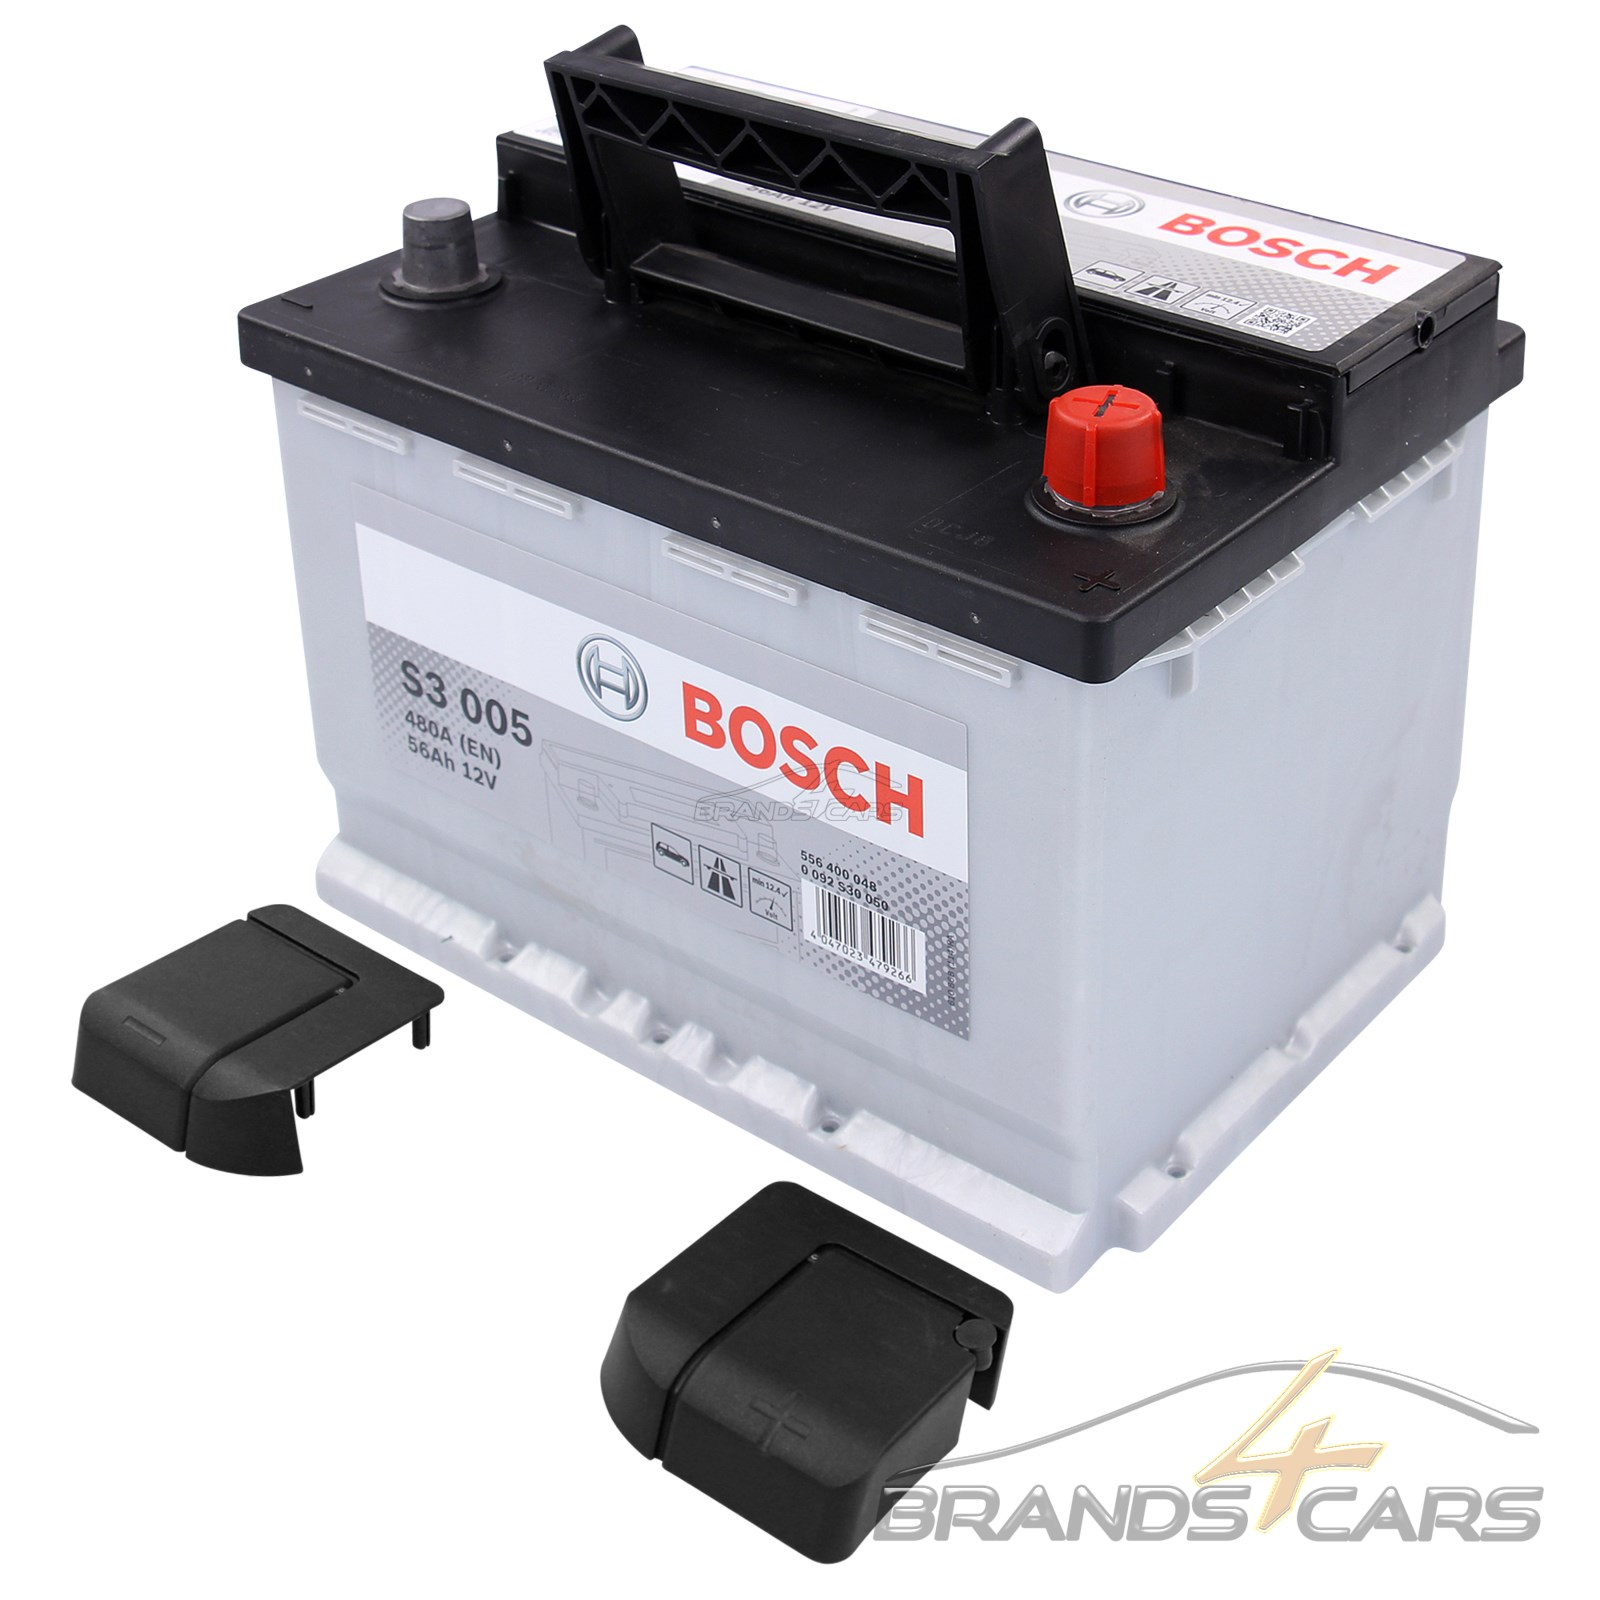 bosch s3 005 56ah 480a 12v autobatterie starterbatterie. Black Bedroom Furniture Sets. Home Design Ideas